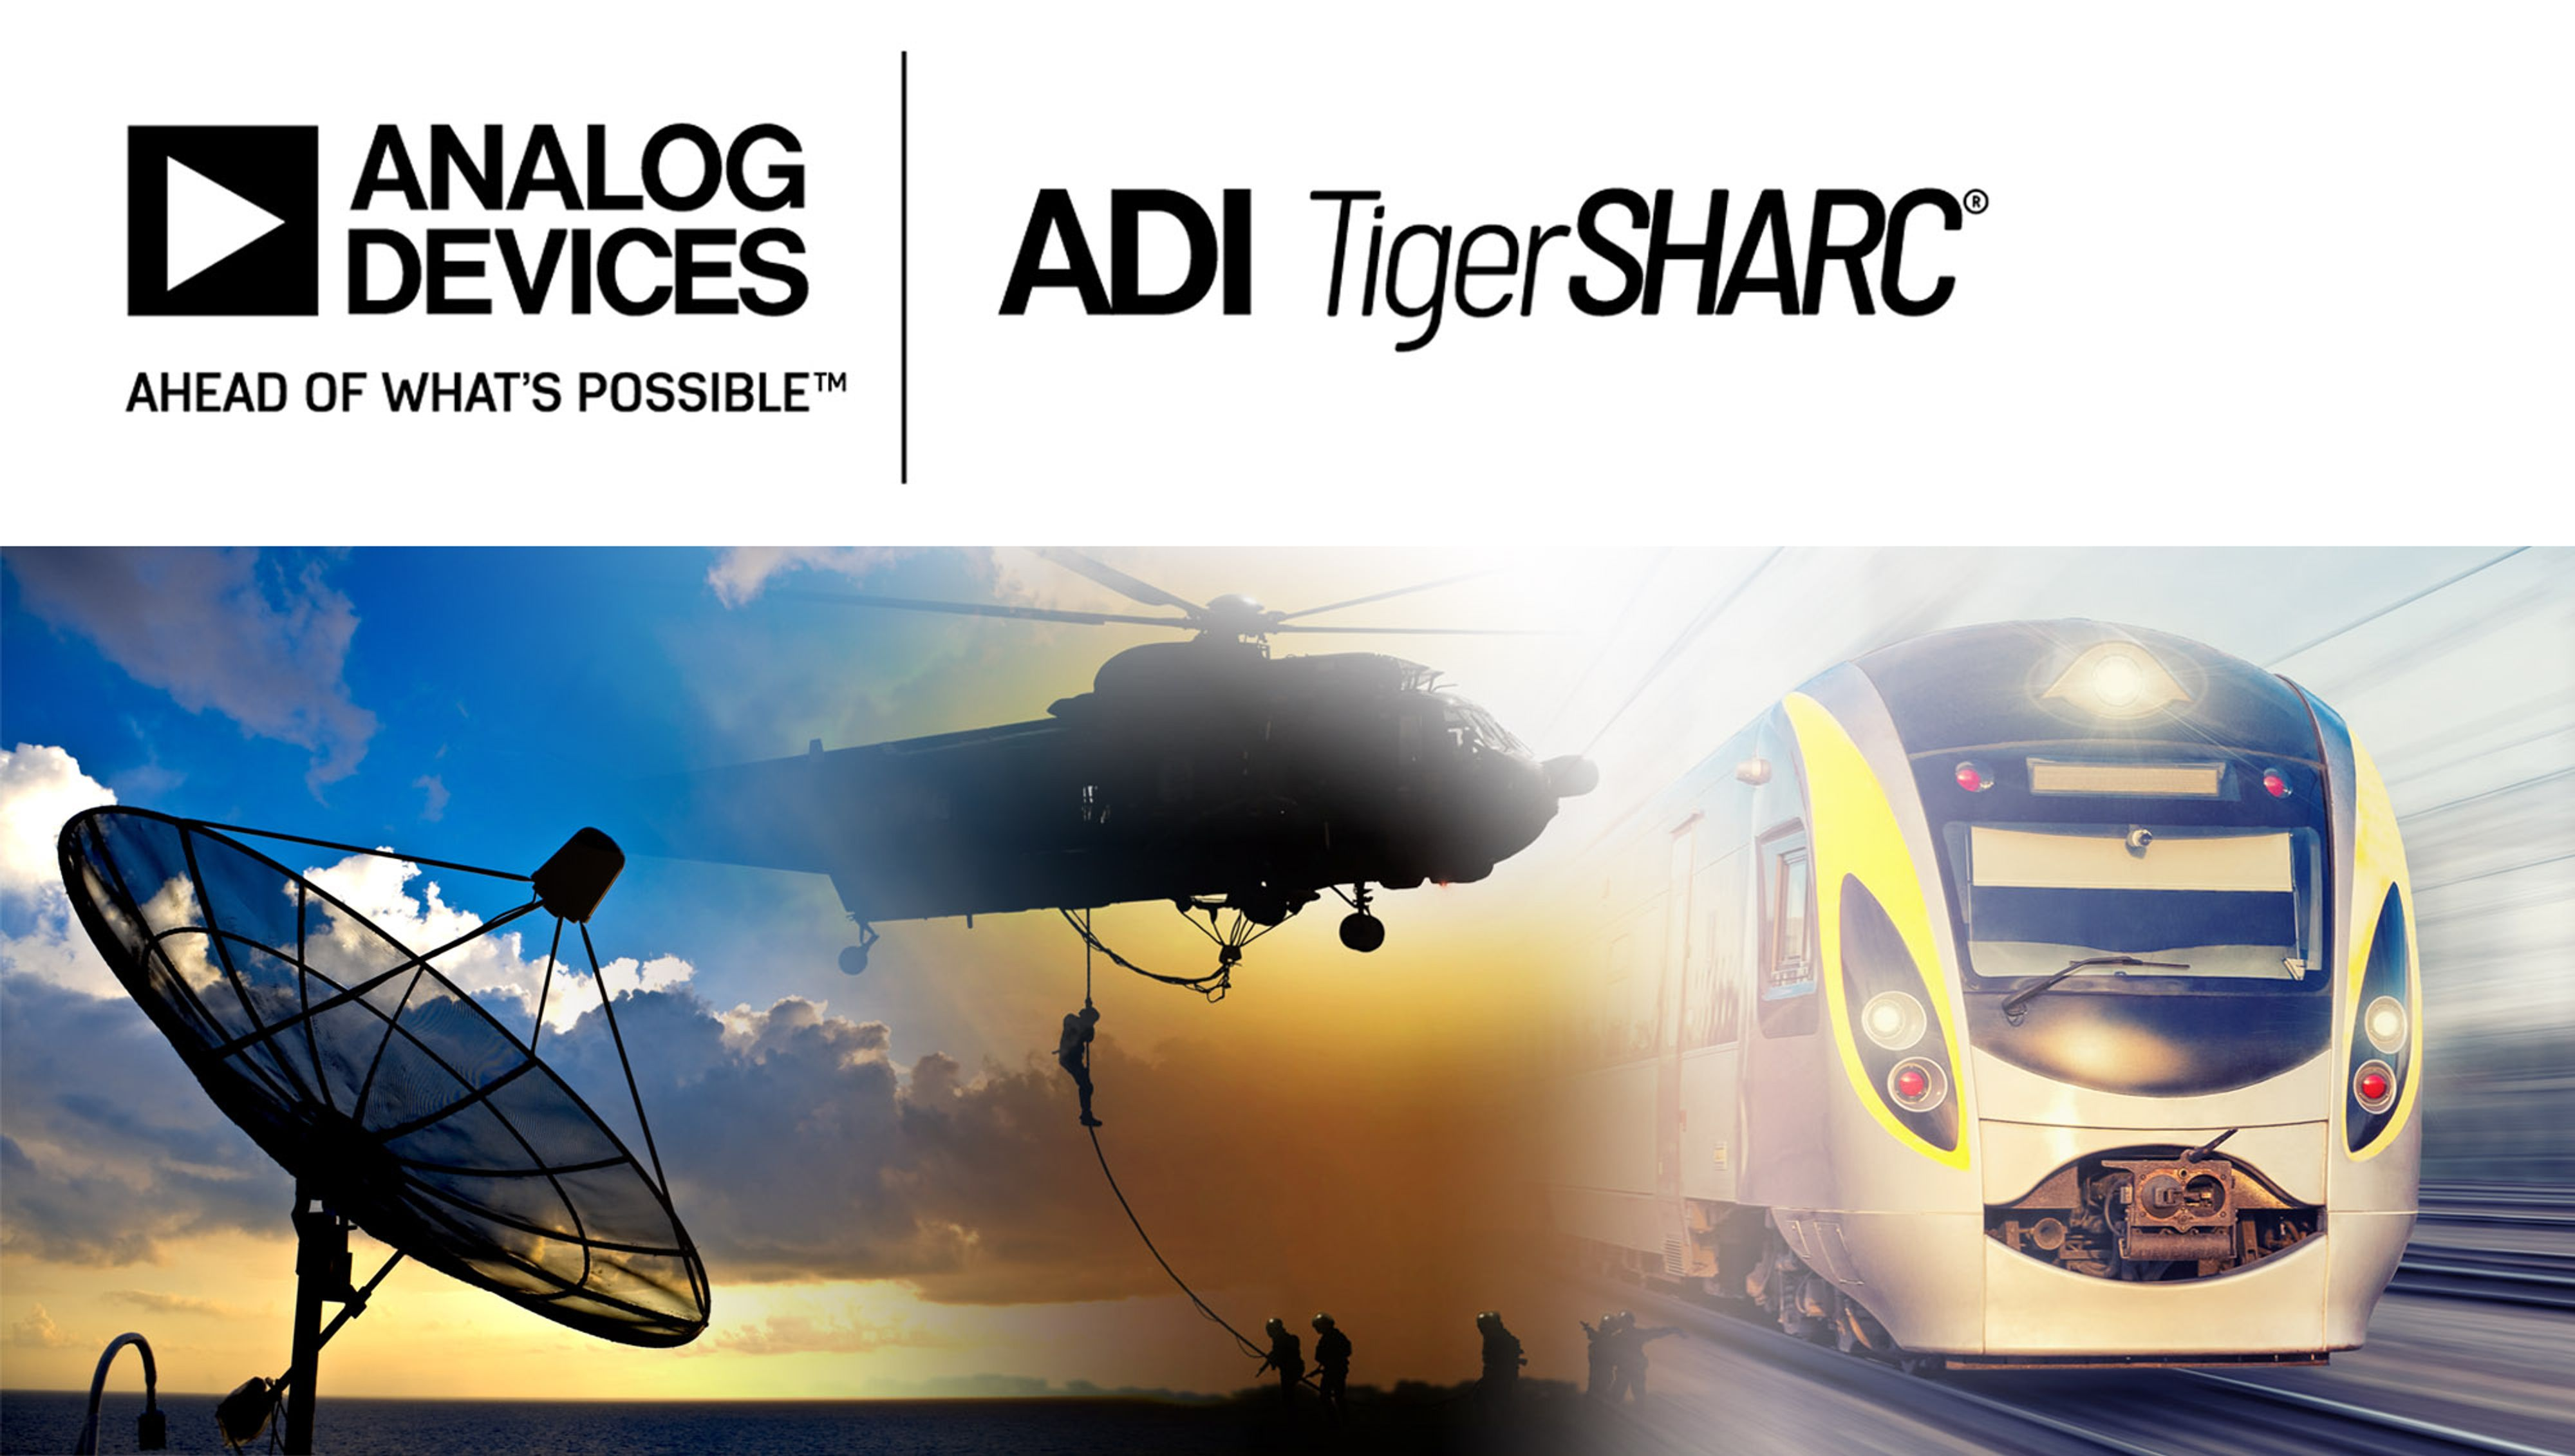 ADI%20TigerSHARC_campaign_image_Feb20